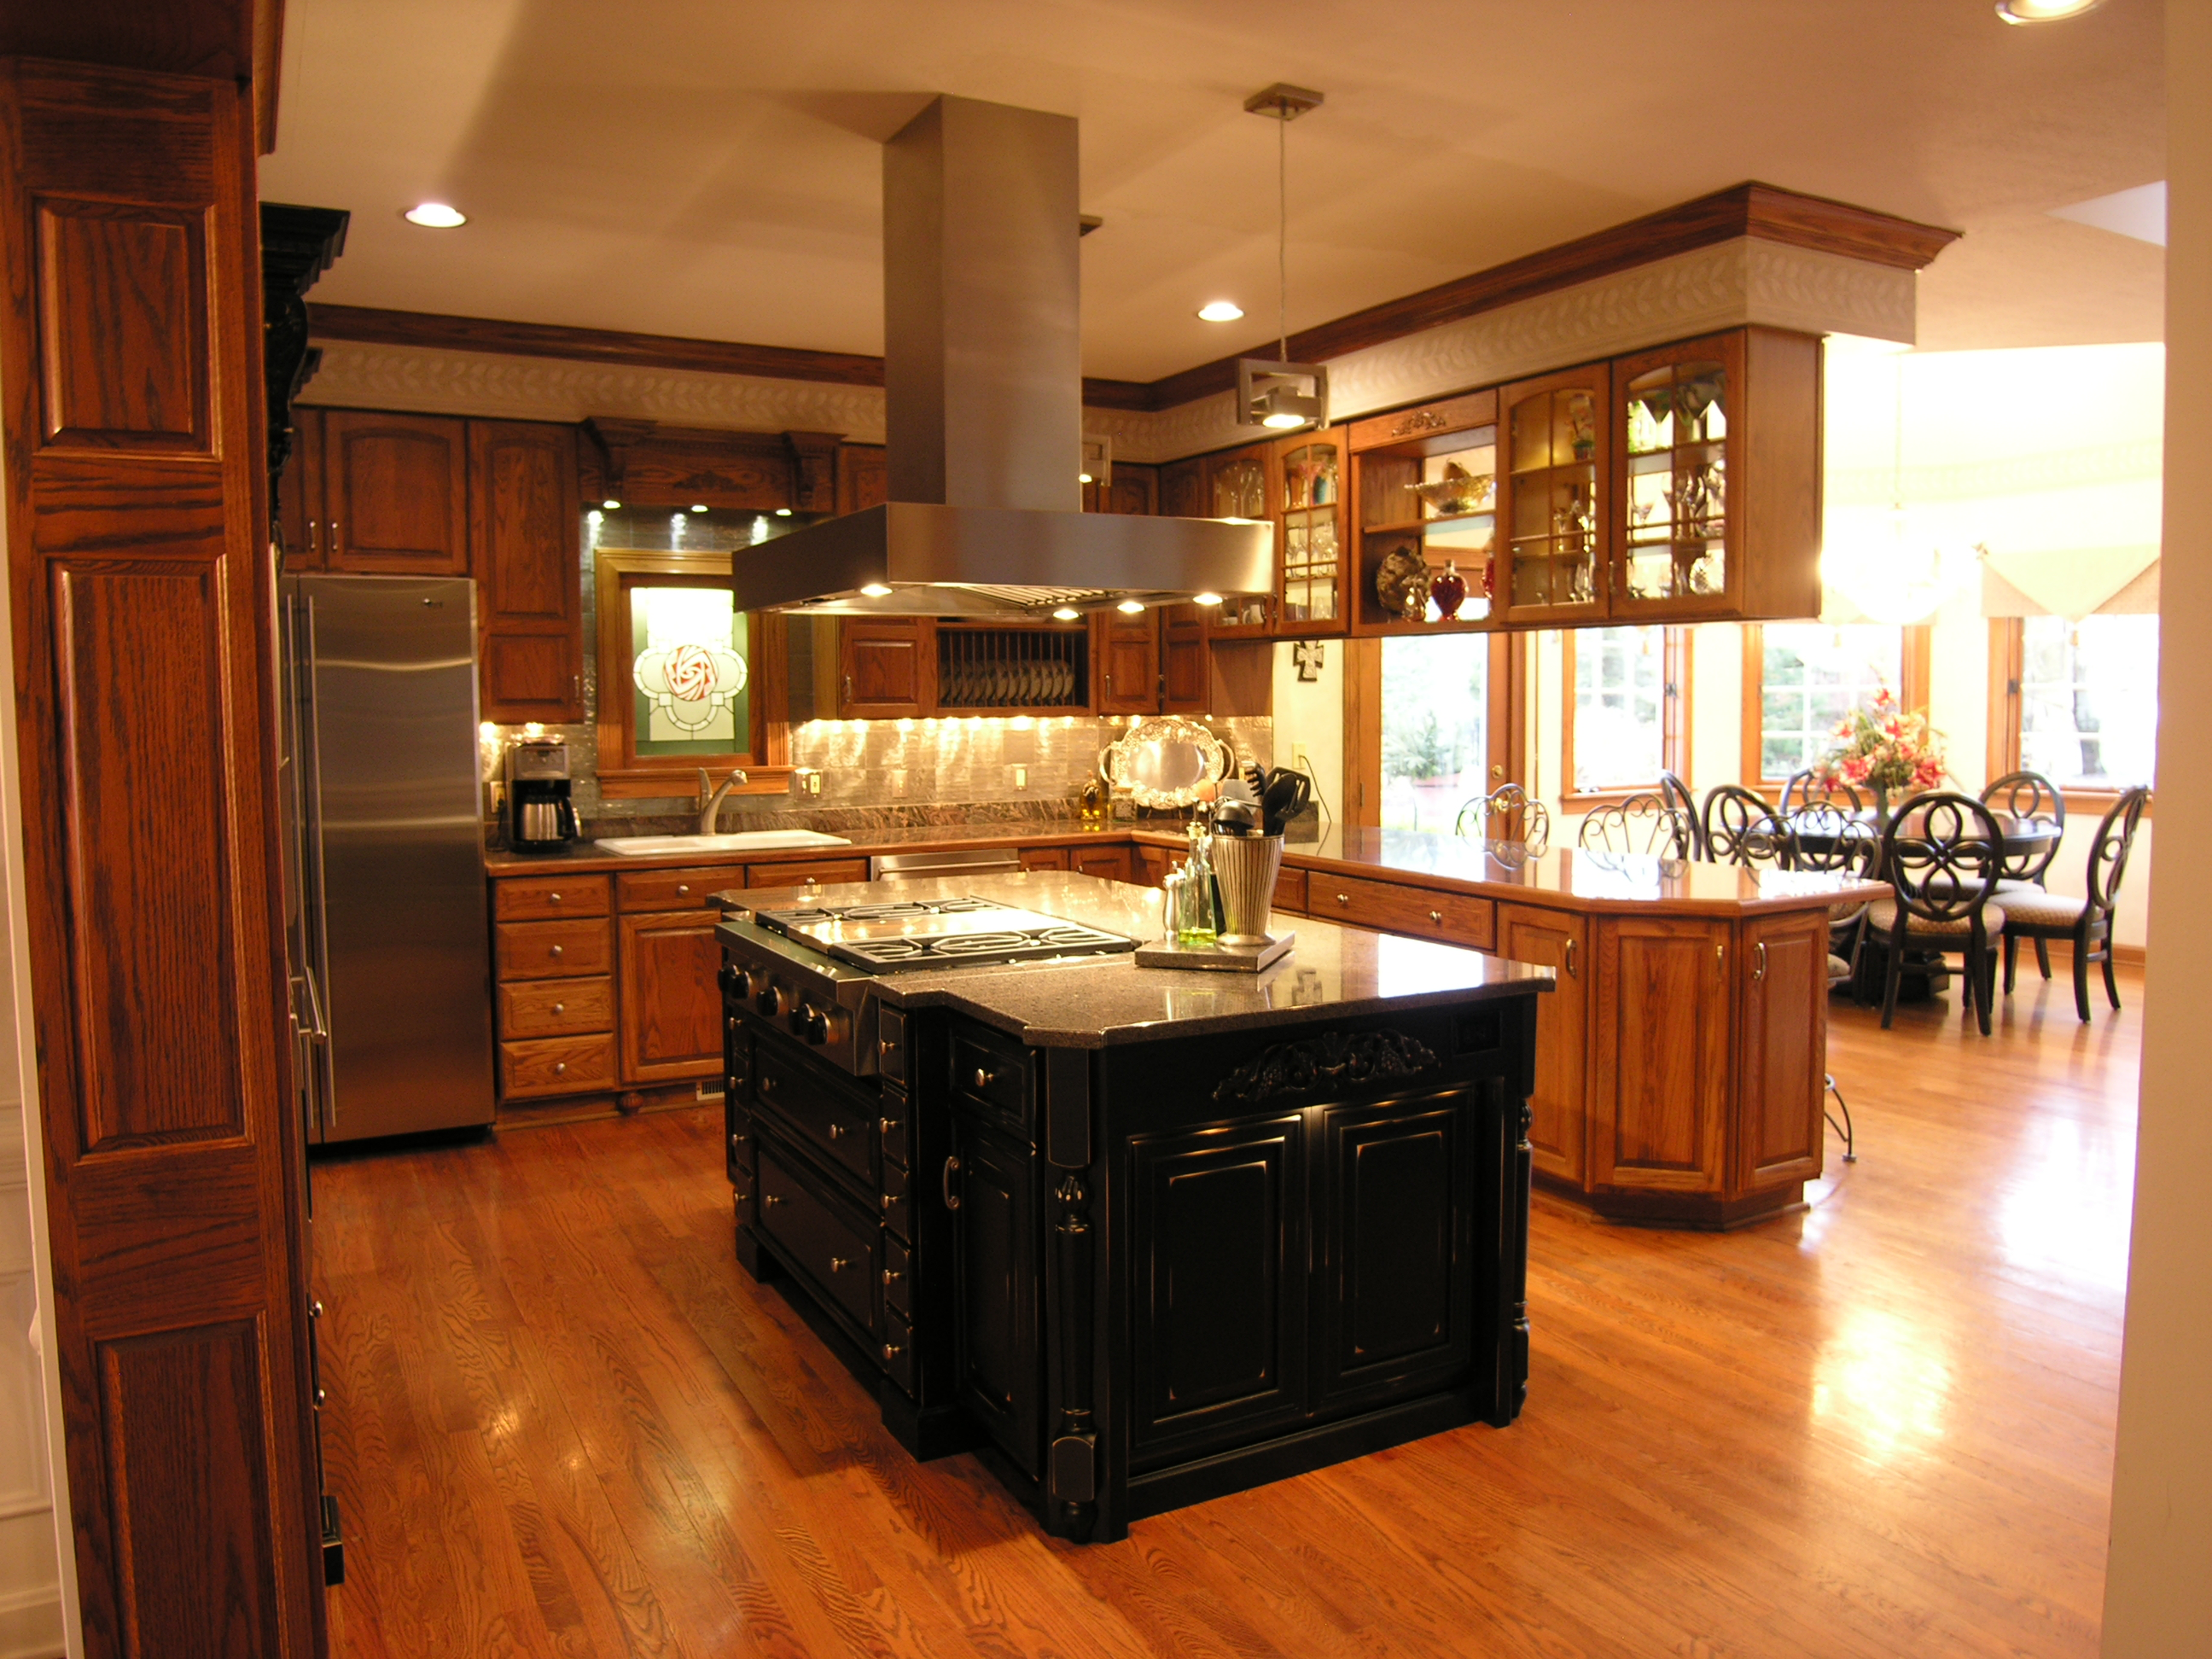 Kitchen island hood rmd designs llc - Show picture of kitchen ...